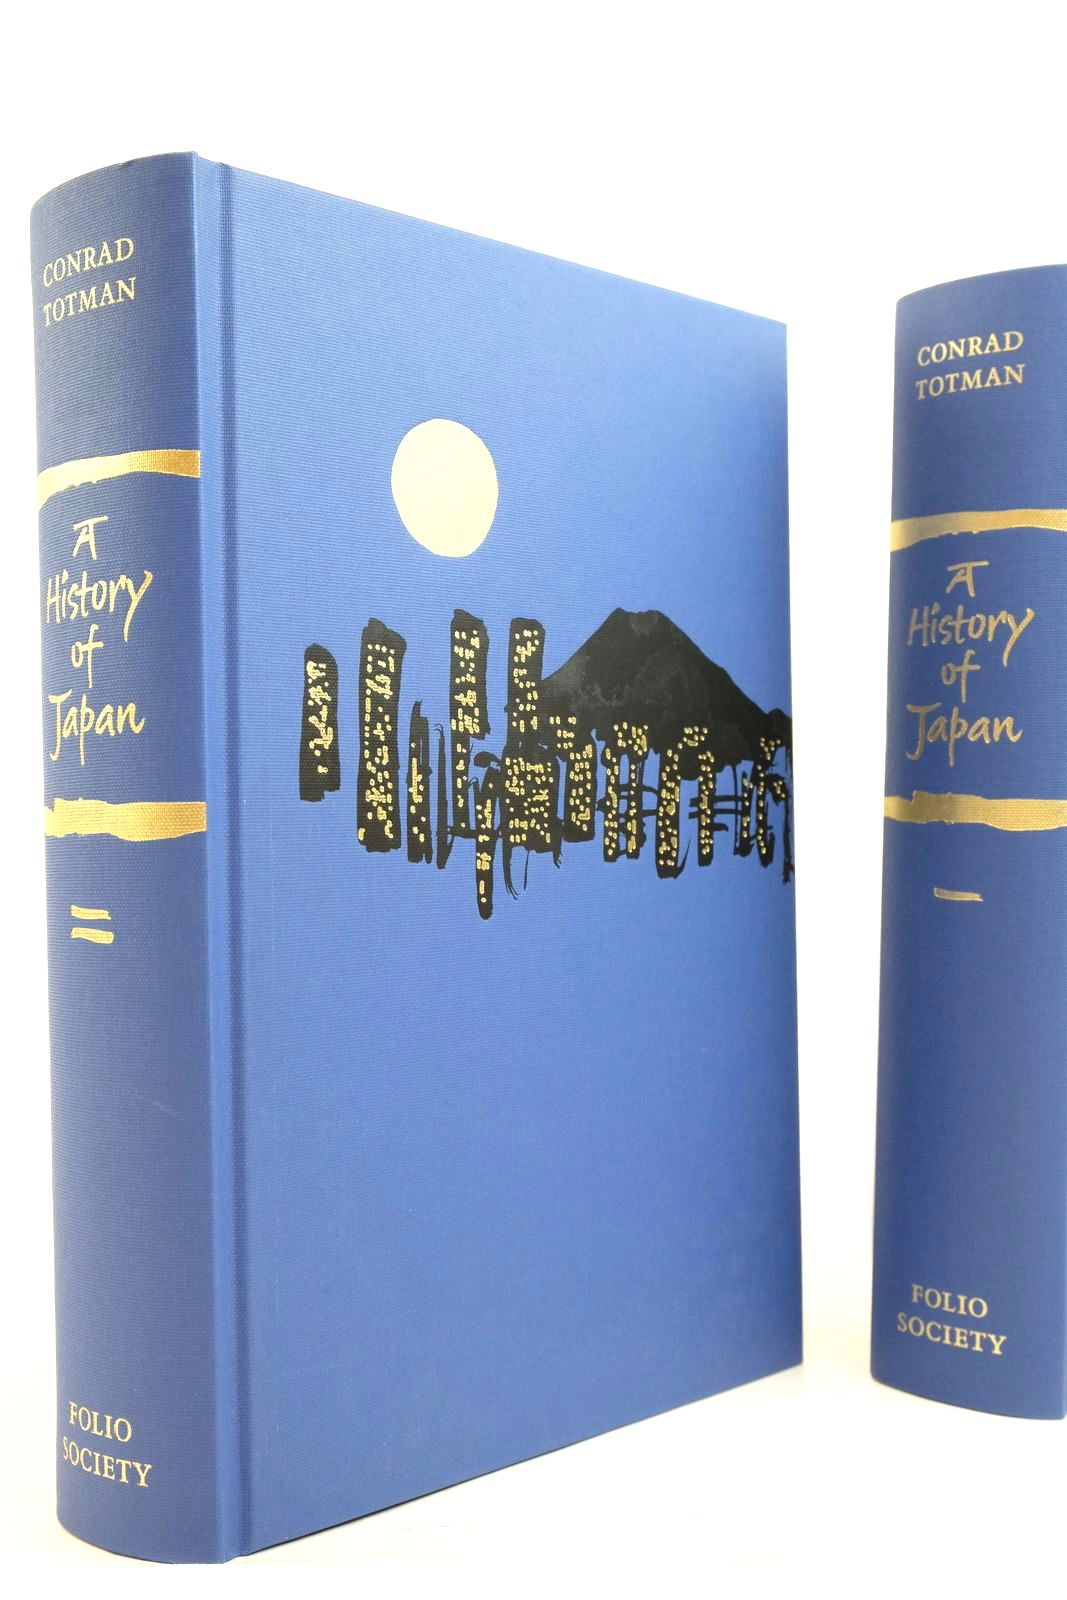 Photo of A HISTORY OF JAPAN (2 VOLUMES) written by Totman, Conrad Dobson, Hugo published by Folio Society (STOCK CODE: 2134707)  for sale by Stella & Rose's Books